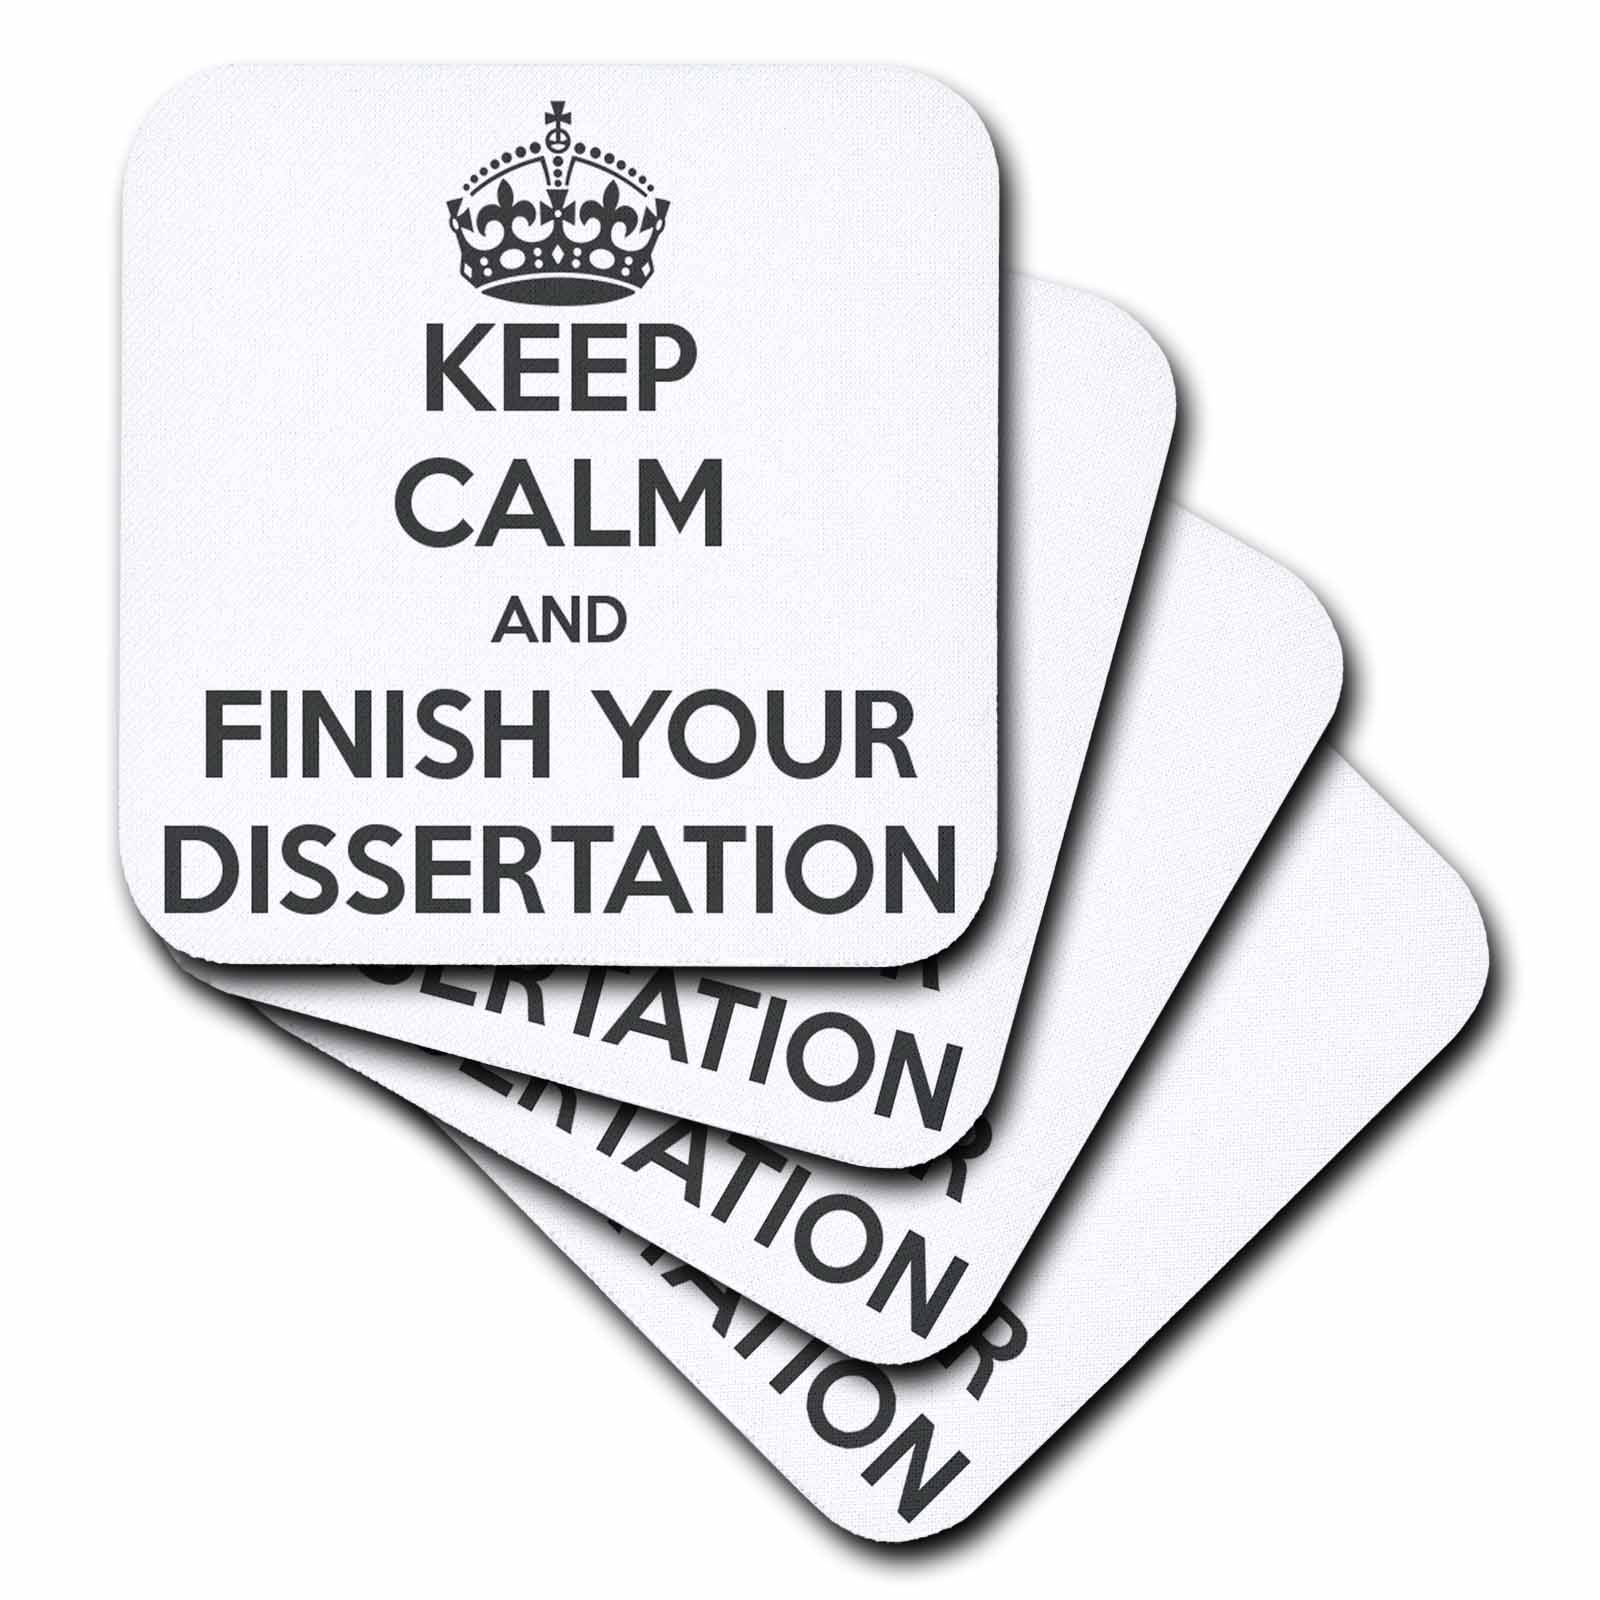 3dRose CST/_193304/_1 Keep Calm /& Finish Your Dissertation White /& Gray Soft Coaster Set of 4